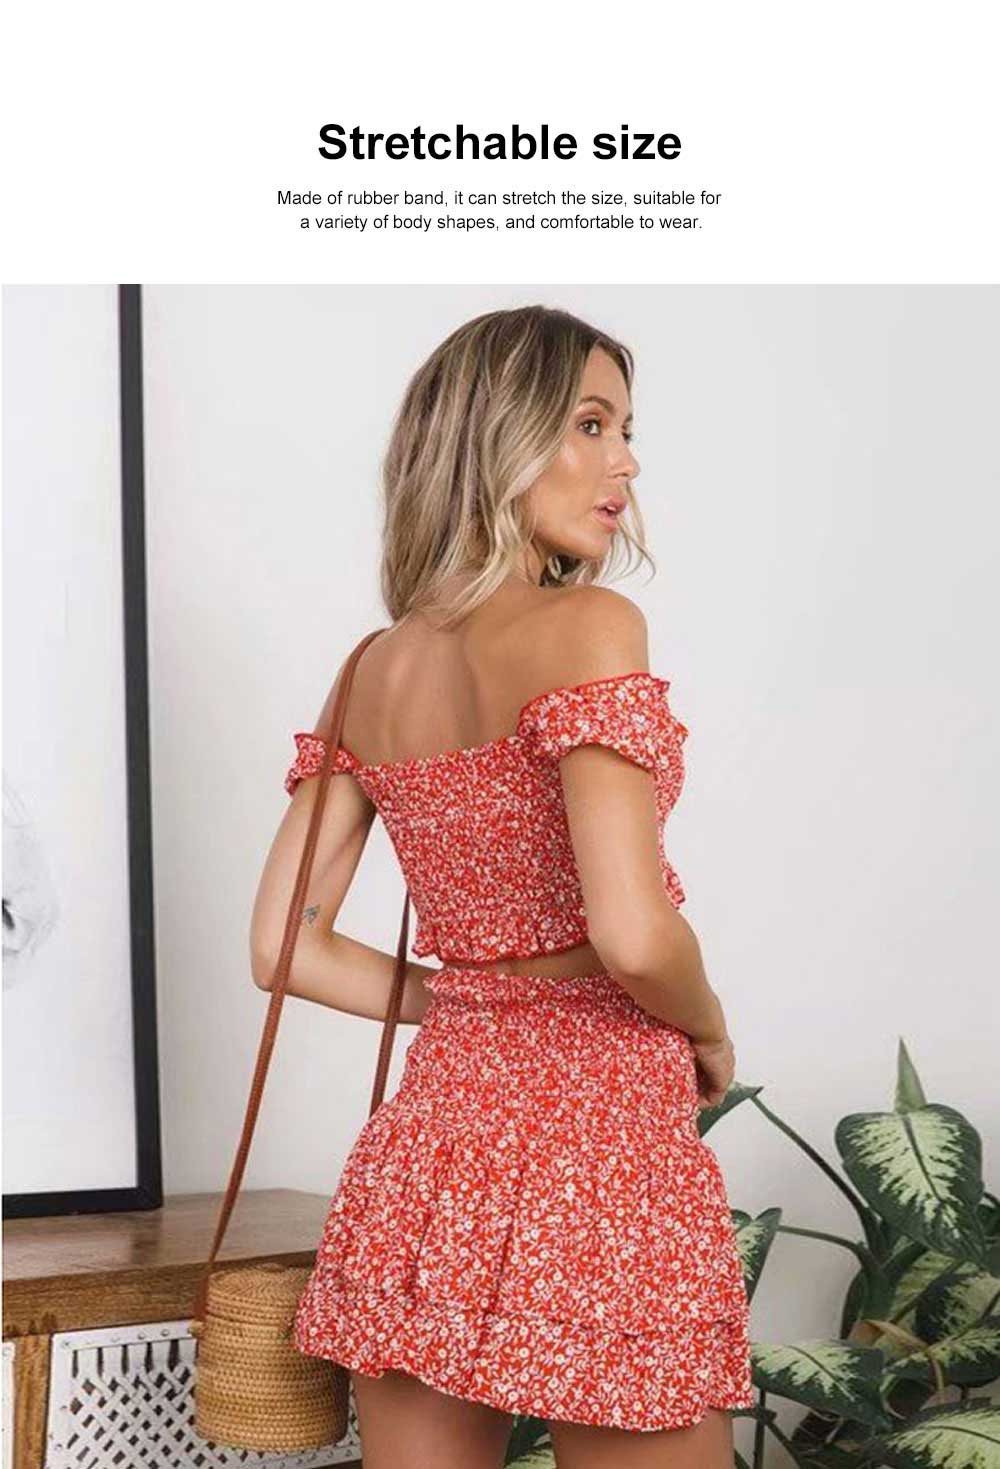 Fashion Summer Suit with Flowers Printing, A Shoulder Shirt with a Half-length Skirts Suit For Women Girls 1